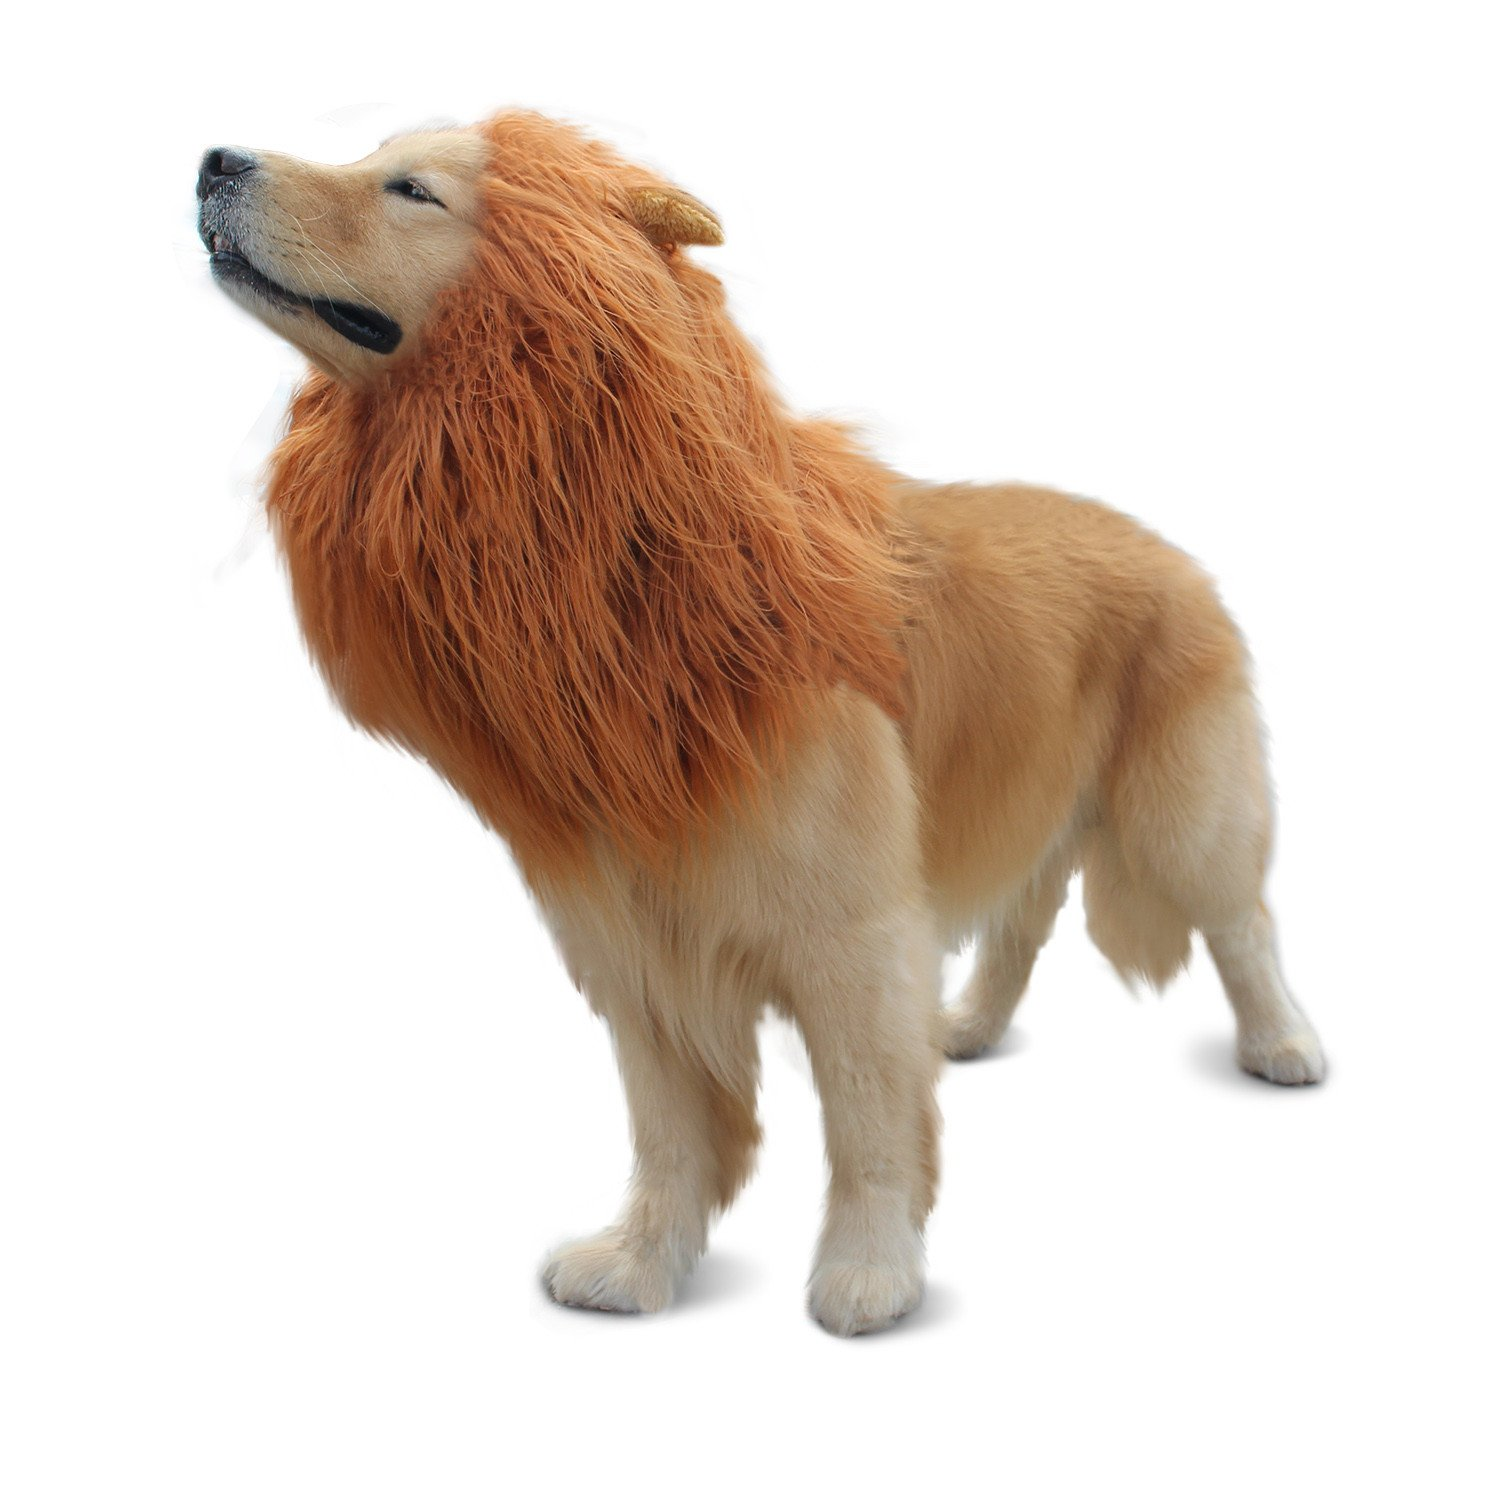 RWM ICCKER Lion Mane for Dog - Halloween Dog Costume Large Size - Hilarious Realistic & Funny Majestic Looking Hoods with Ear and Tails - Great Pet Gift Choice for Christmas,Pet Birthday Party